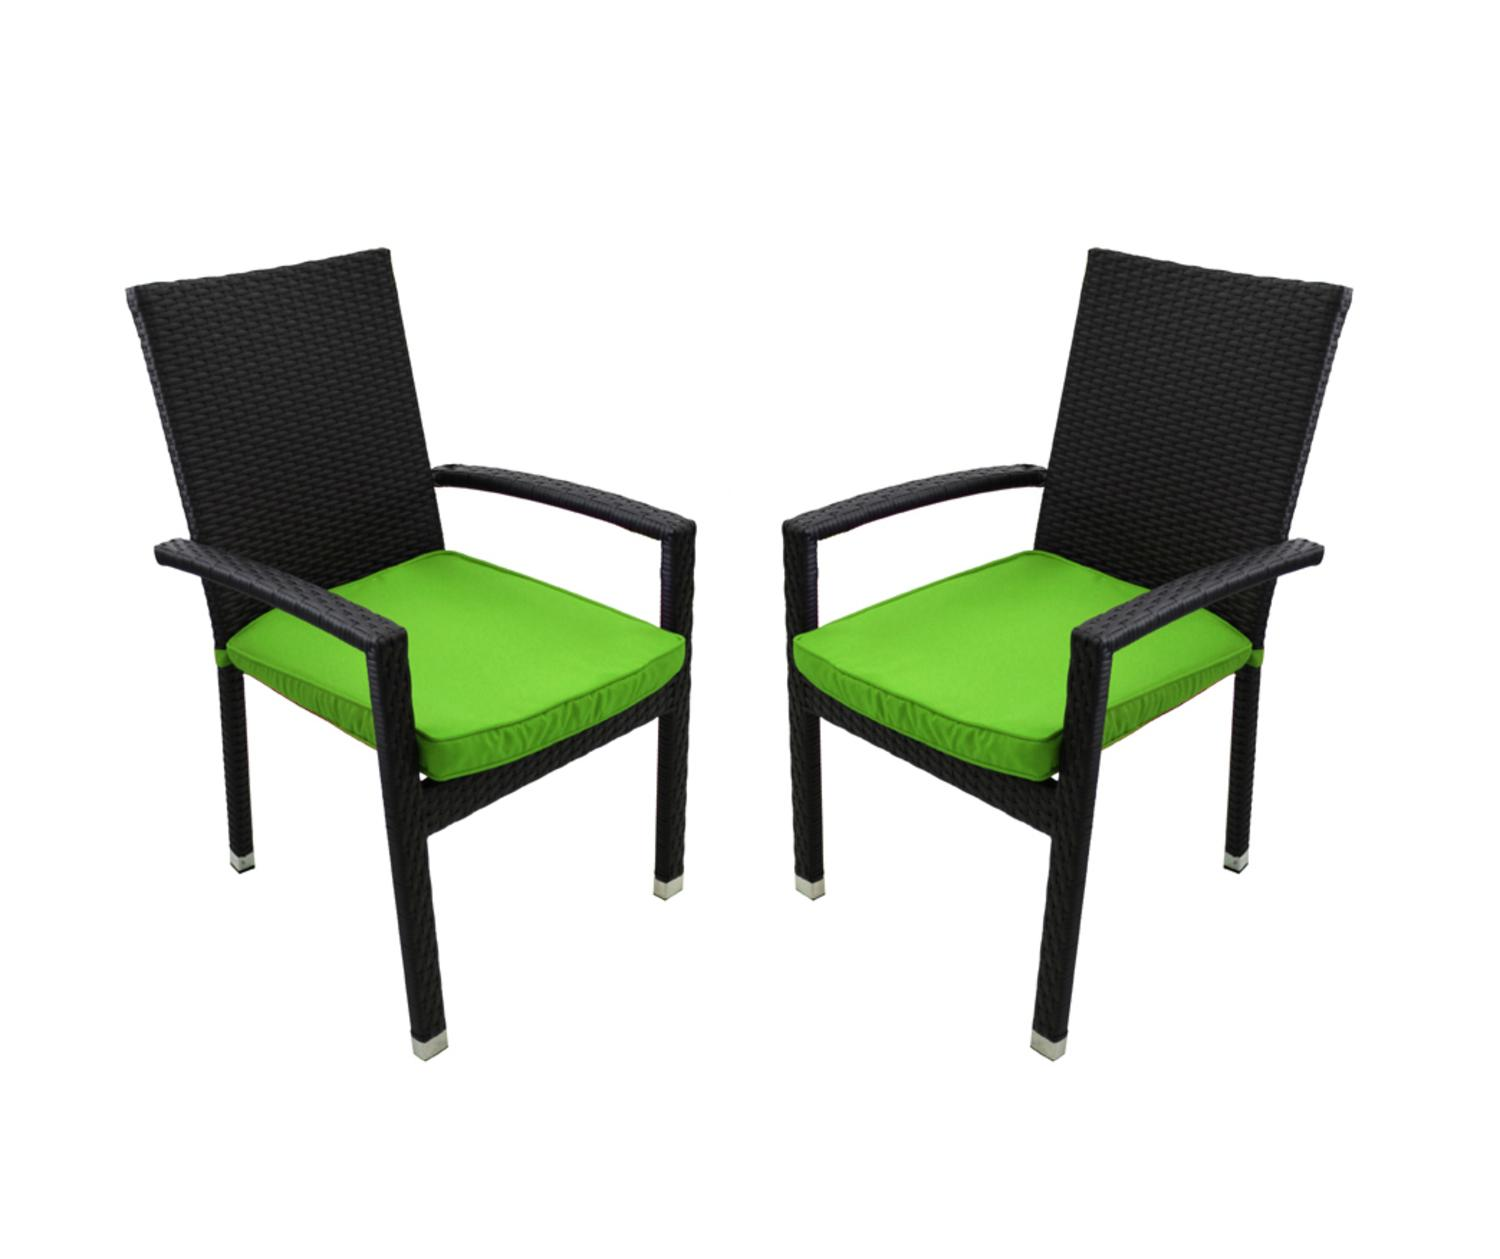 green resin patio chairs gaming chair surround sound set of 2 black wicker outdoor furniture dining